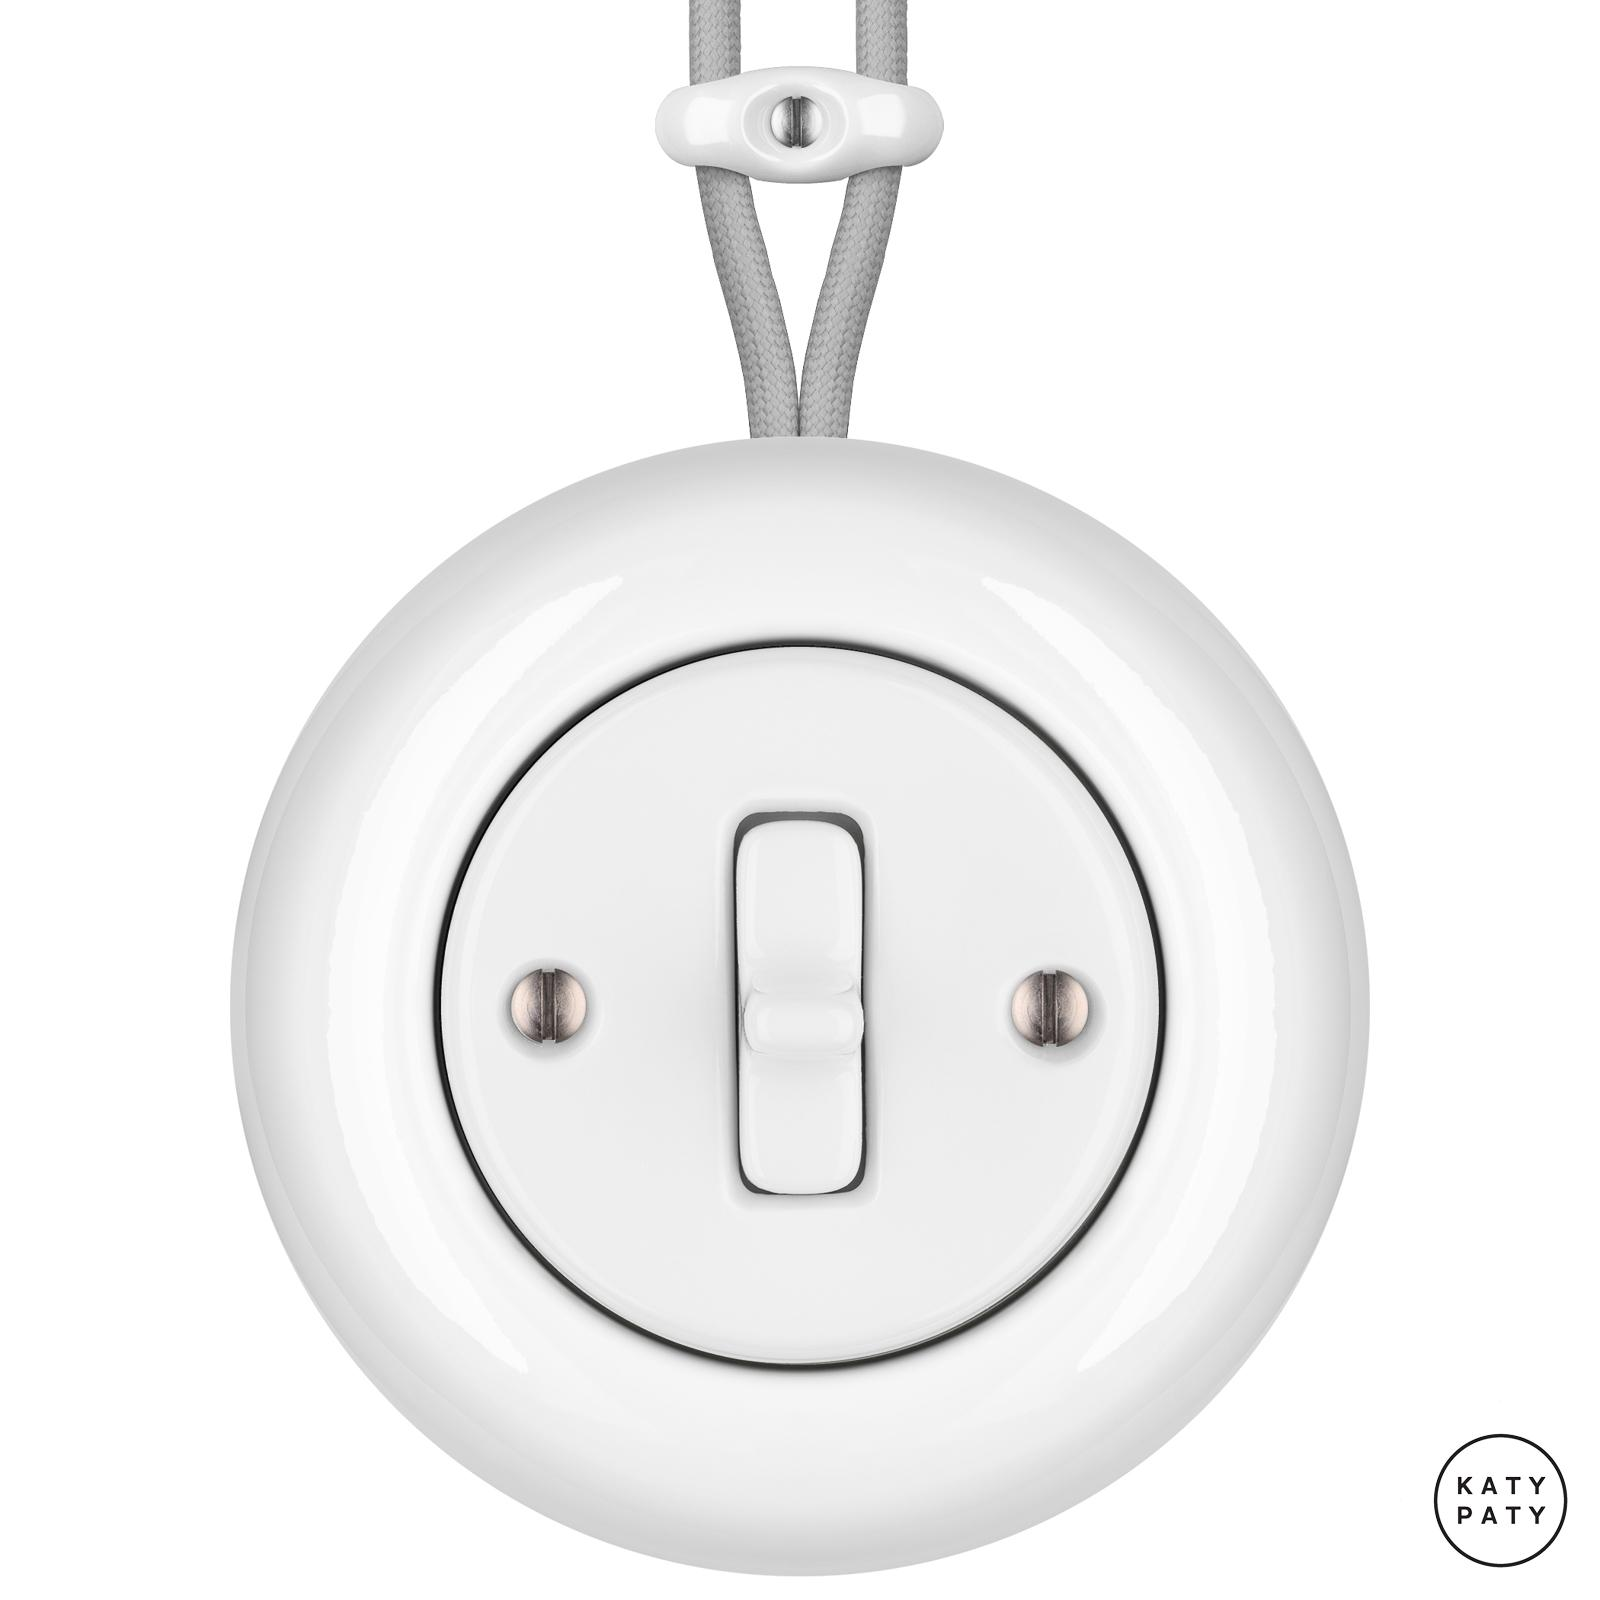 Porcelain toggle switches - 1 gang ()  - ALBA | Katy Paty